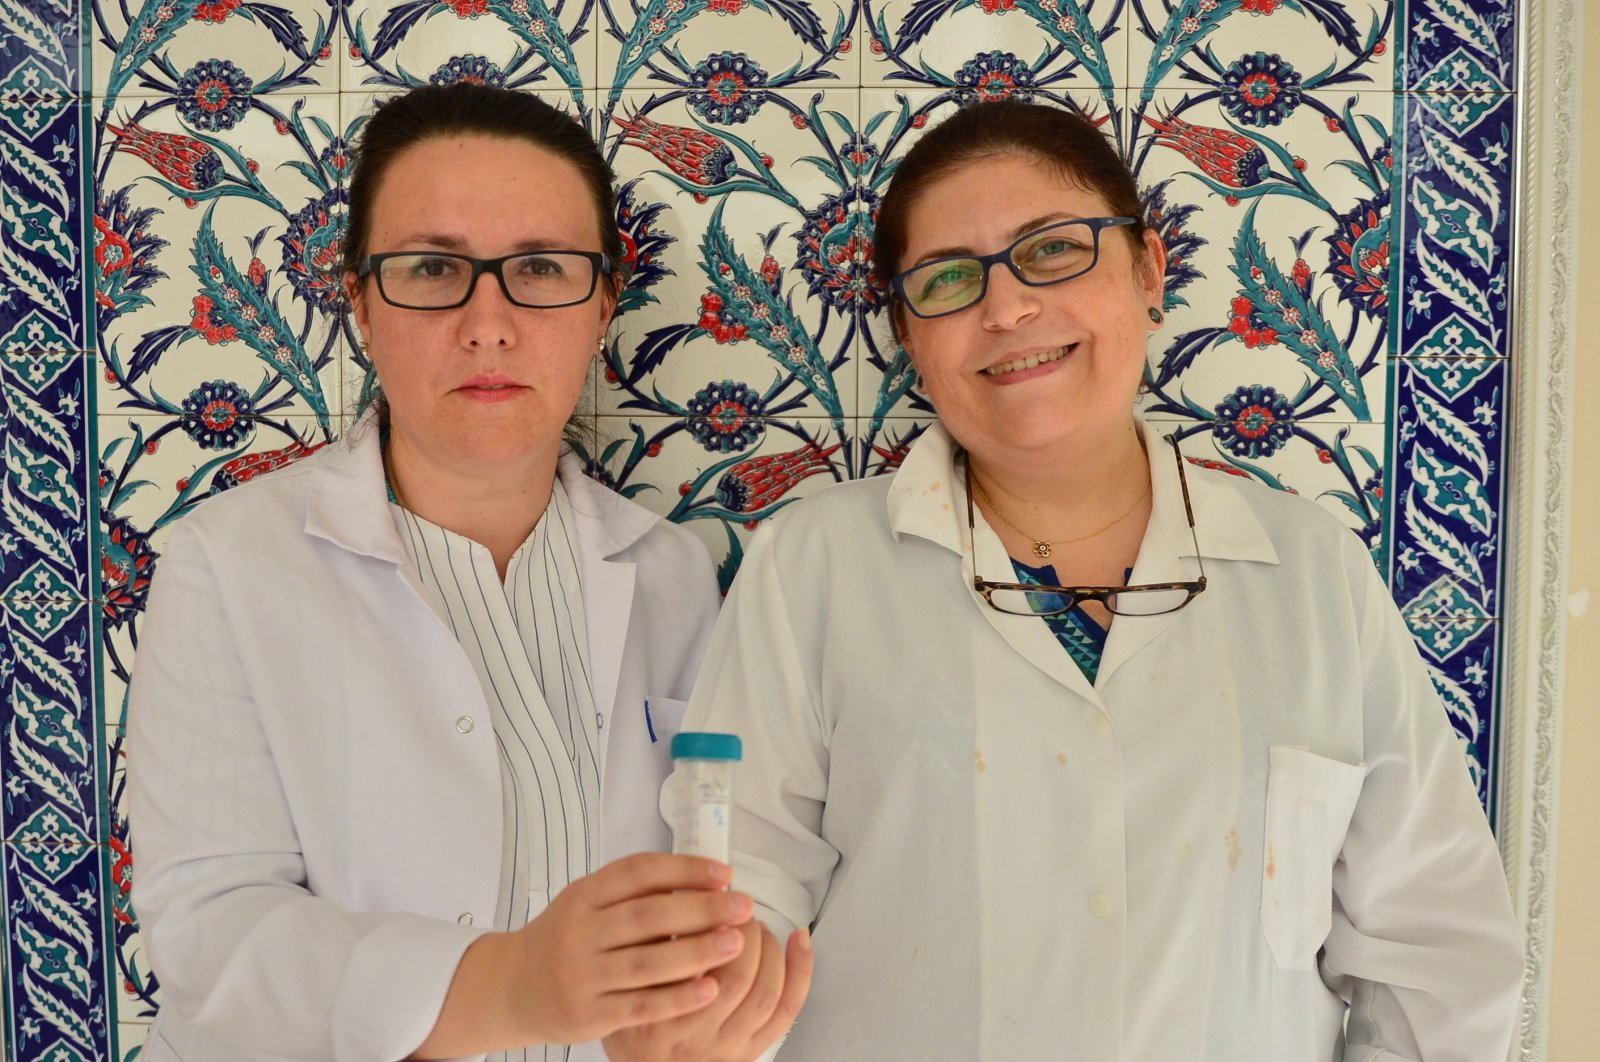 Researchers Dilvin Ipek (L) and associate professor Nükhet Zorba pose with the disinfectant they created at Çanakkale Onsekiz Mart University, July 24, 2020. (AA Photo)